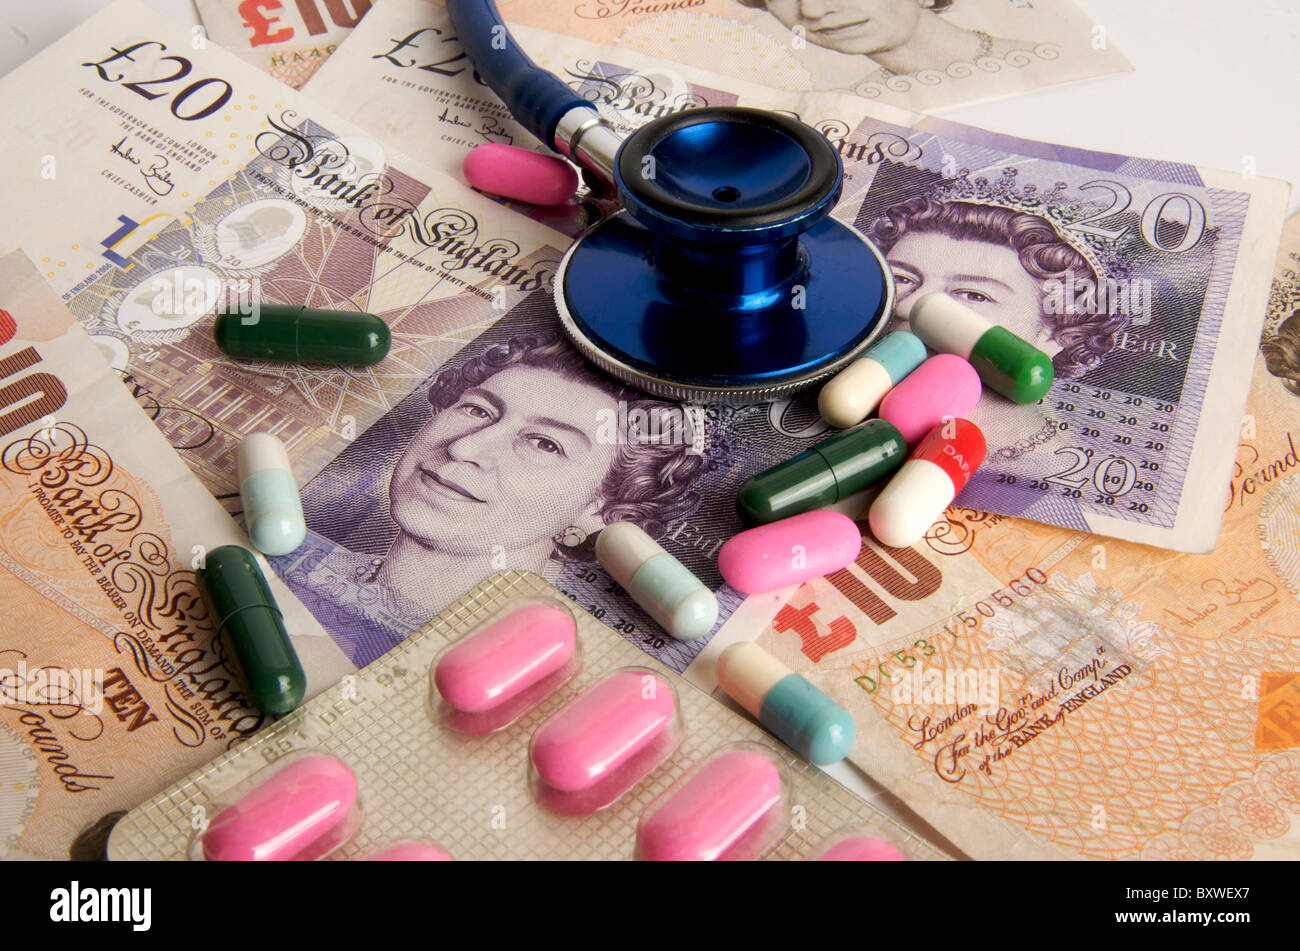 Pound sterling banknotes, stethoscope, pills, concept health care in the UK. - Stock Image